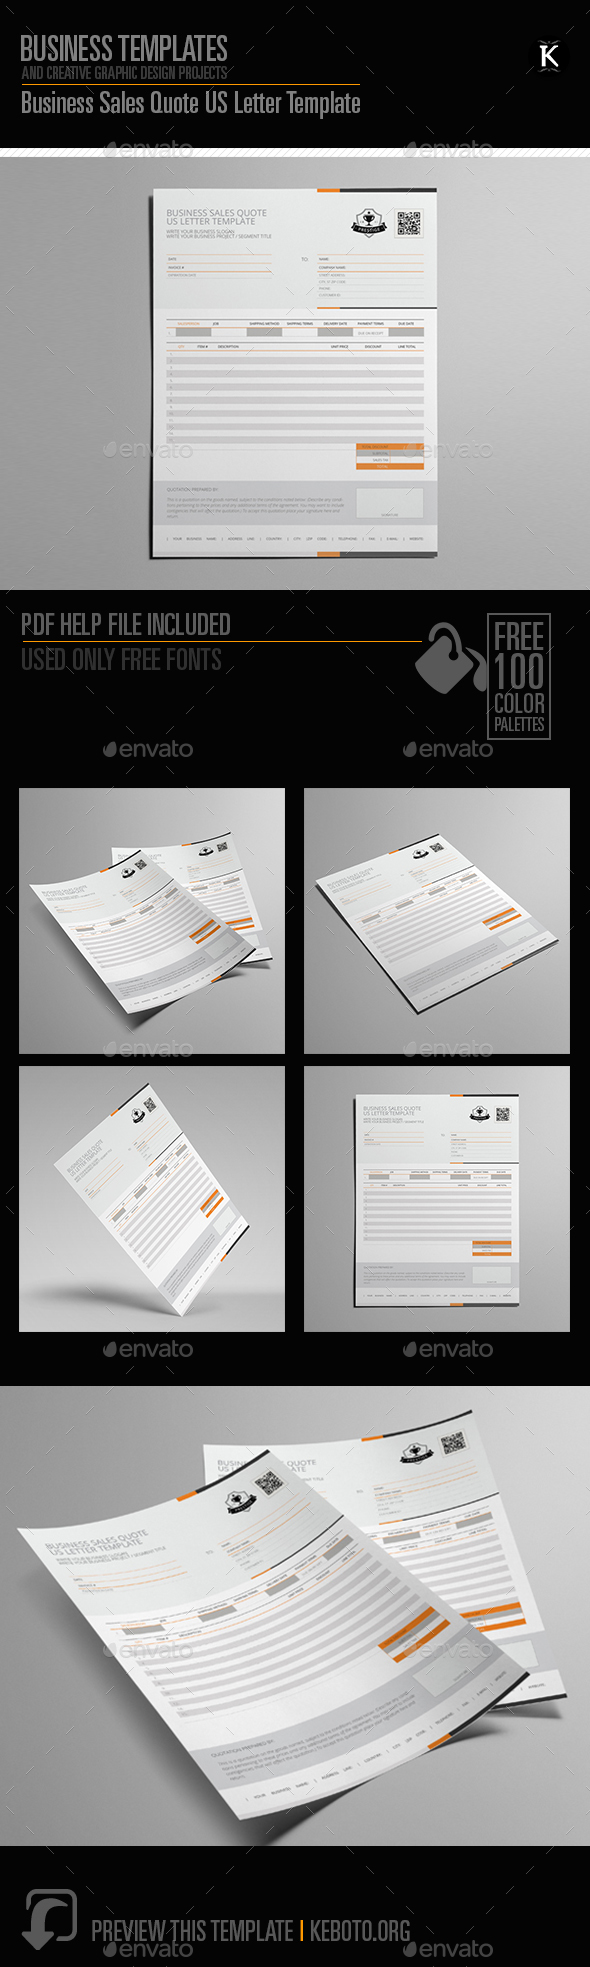 Business Sales Quote US Letter Template - Miscellaneous Print Templates